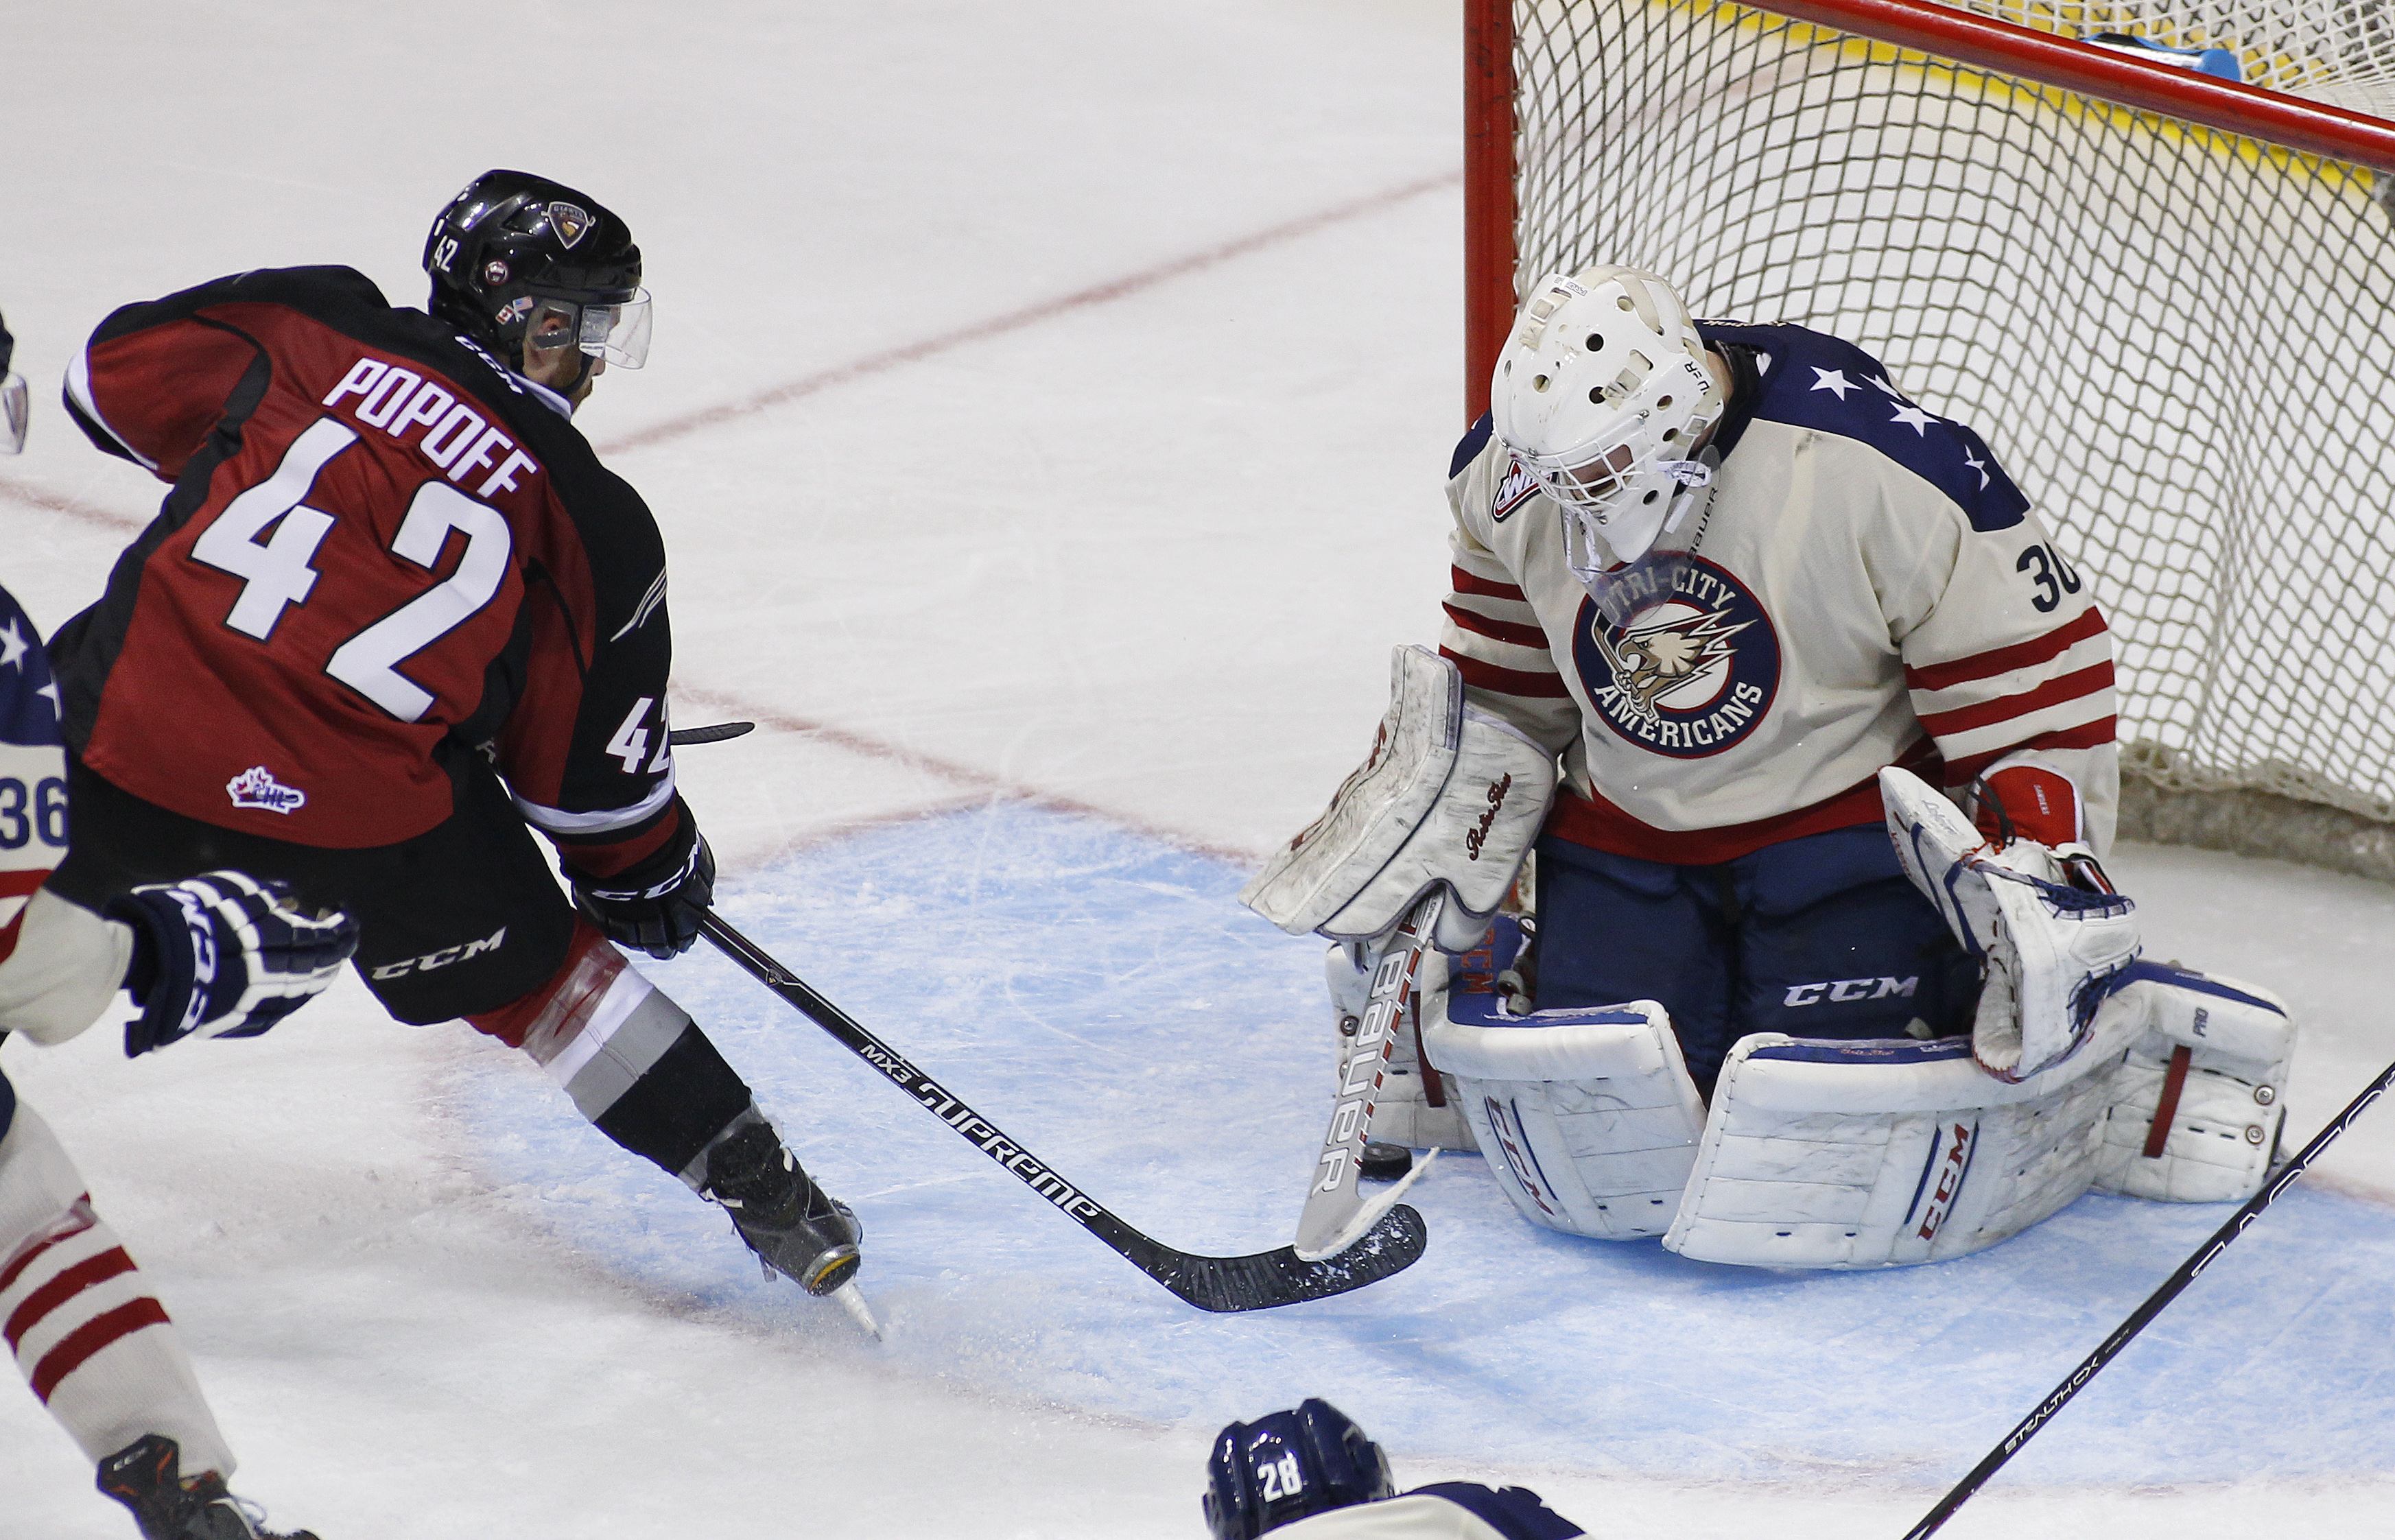 Goaltender Nick Sanders picked up his second win of the season Friday against Seattle. It was Sanders' first start in goal since November 1st.